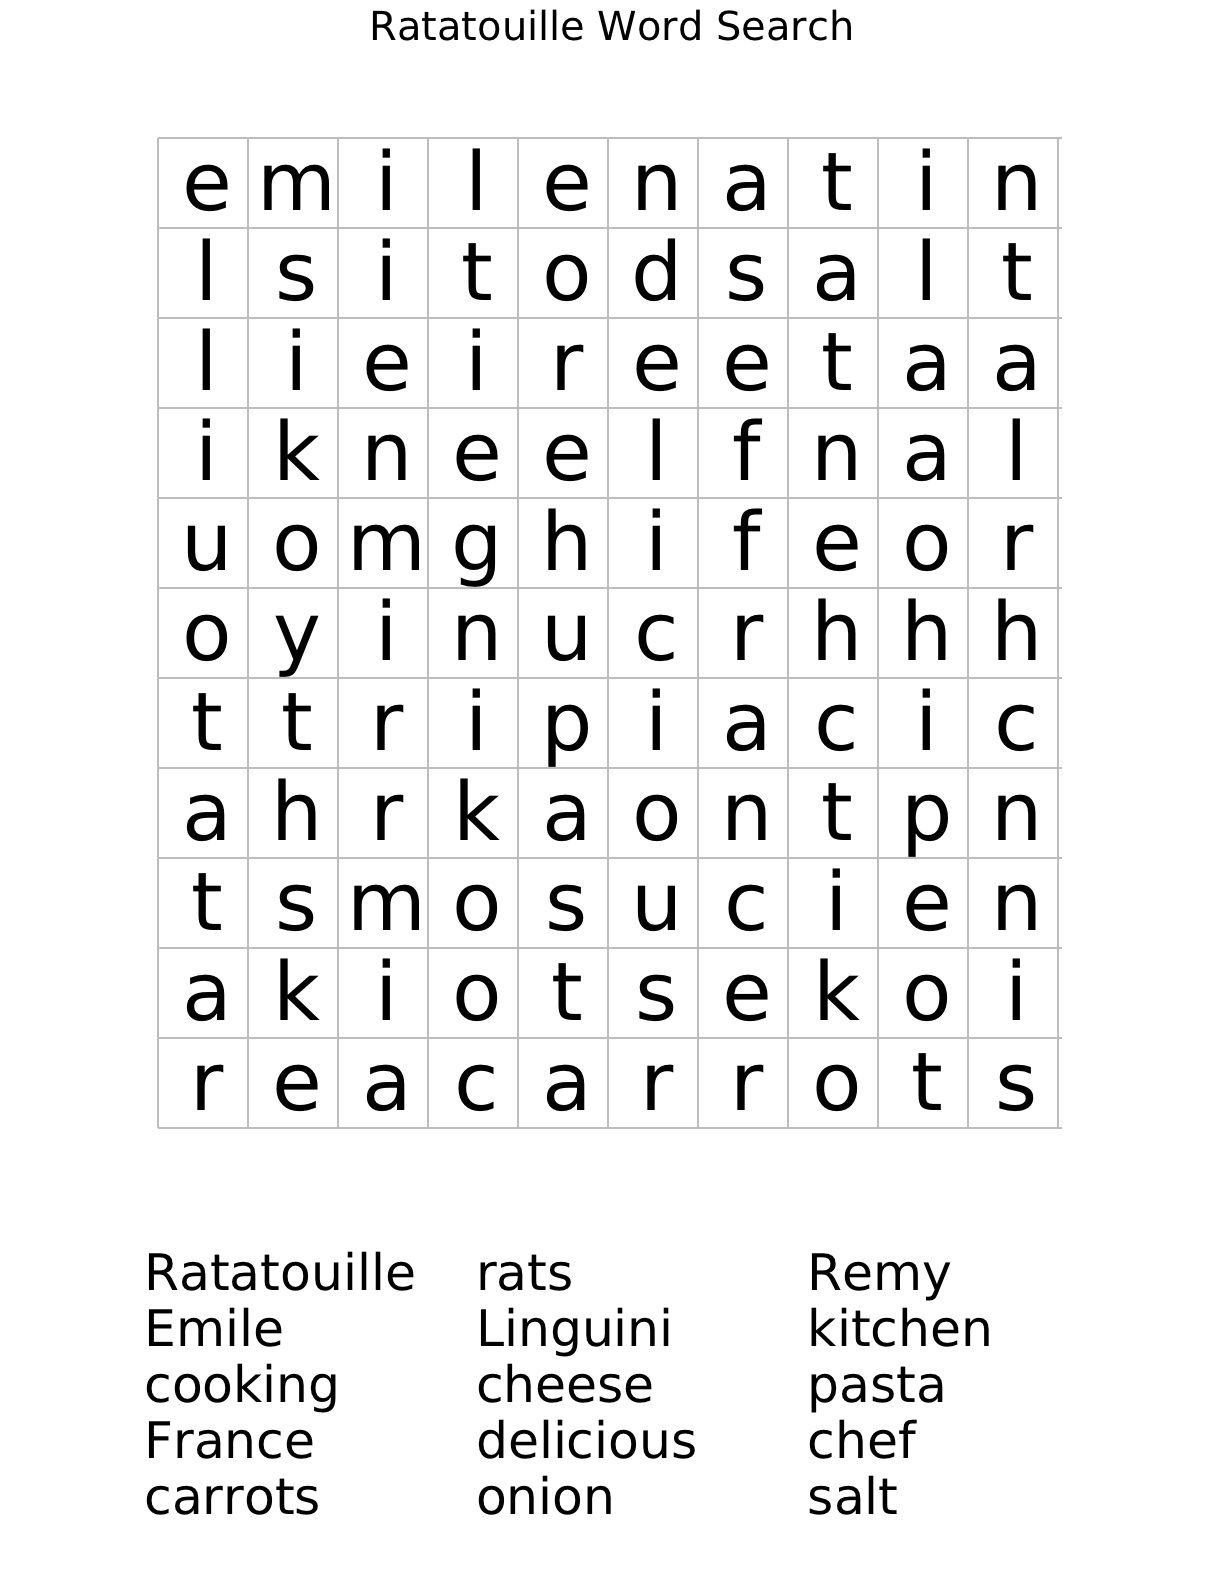 worksheet Free Printable Word Search Worksheets ratatouille word search worksheet free math worksheets worksheets